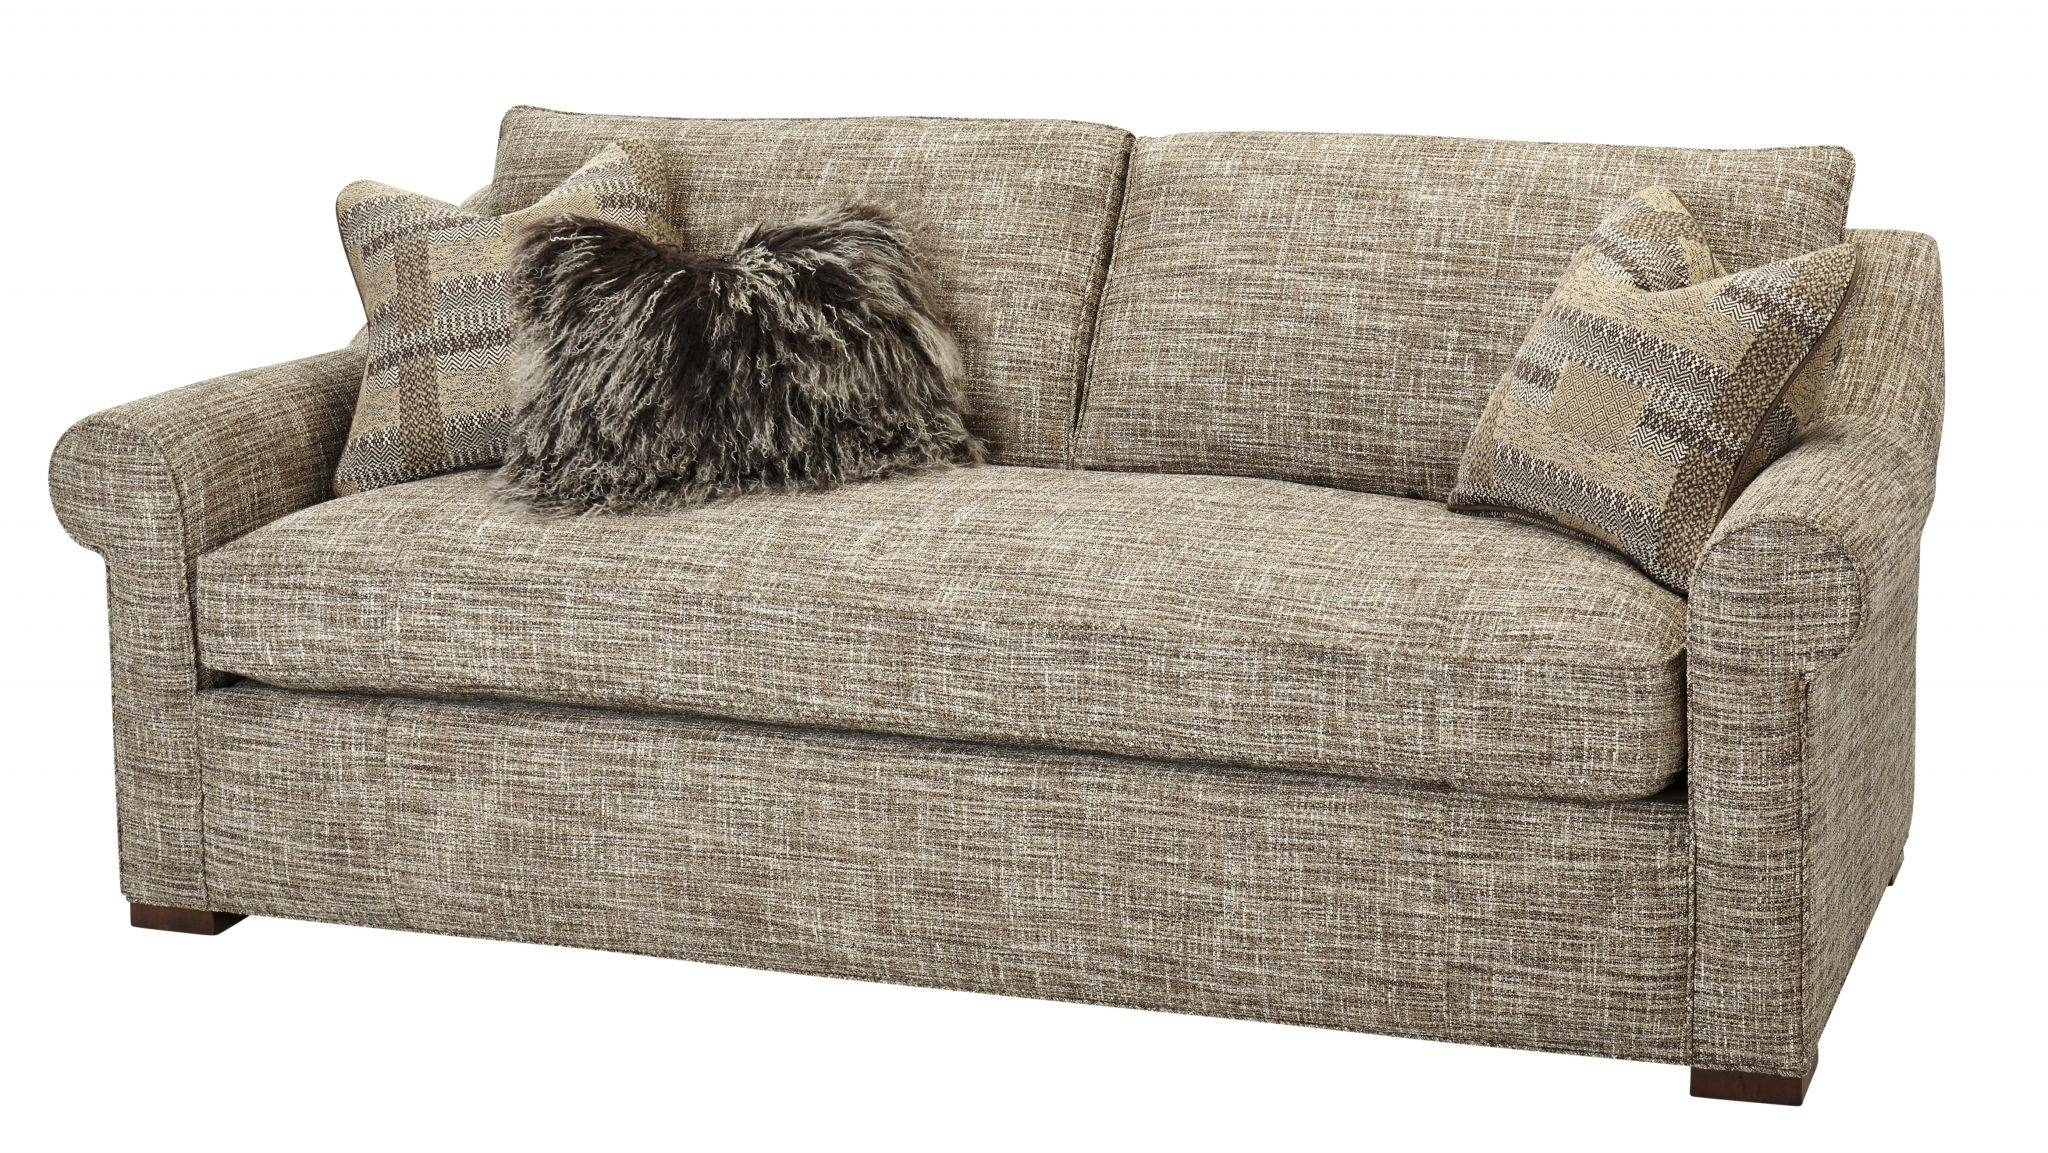 One Cushion Sofas - Massoud Furniture regarding One Cushion Sofas (Image 17 of 30)